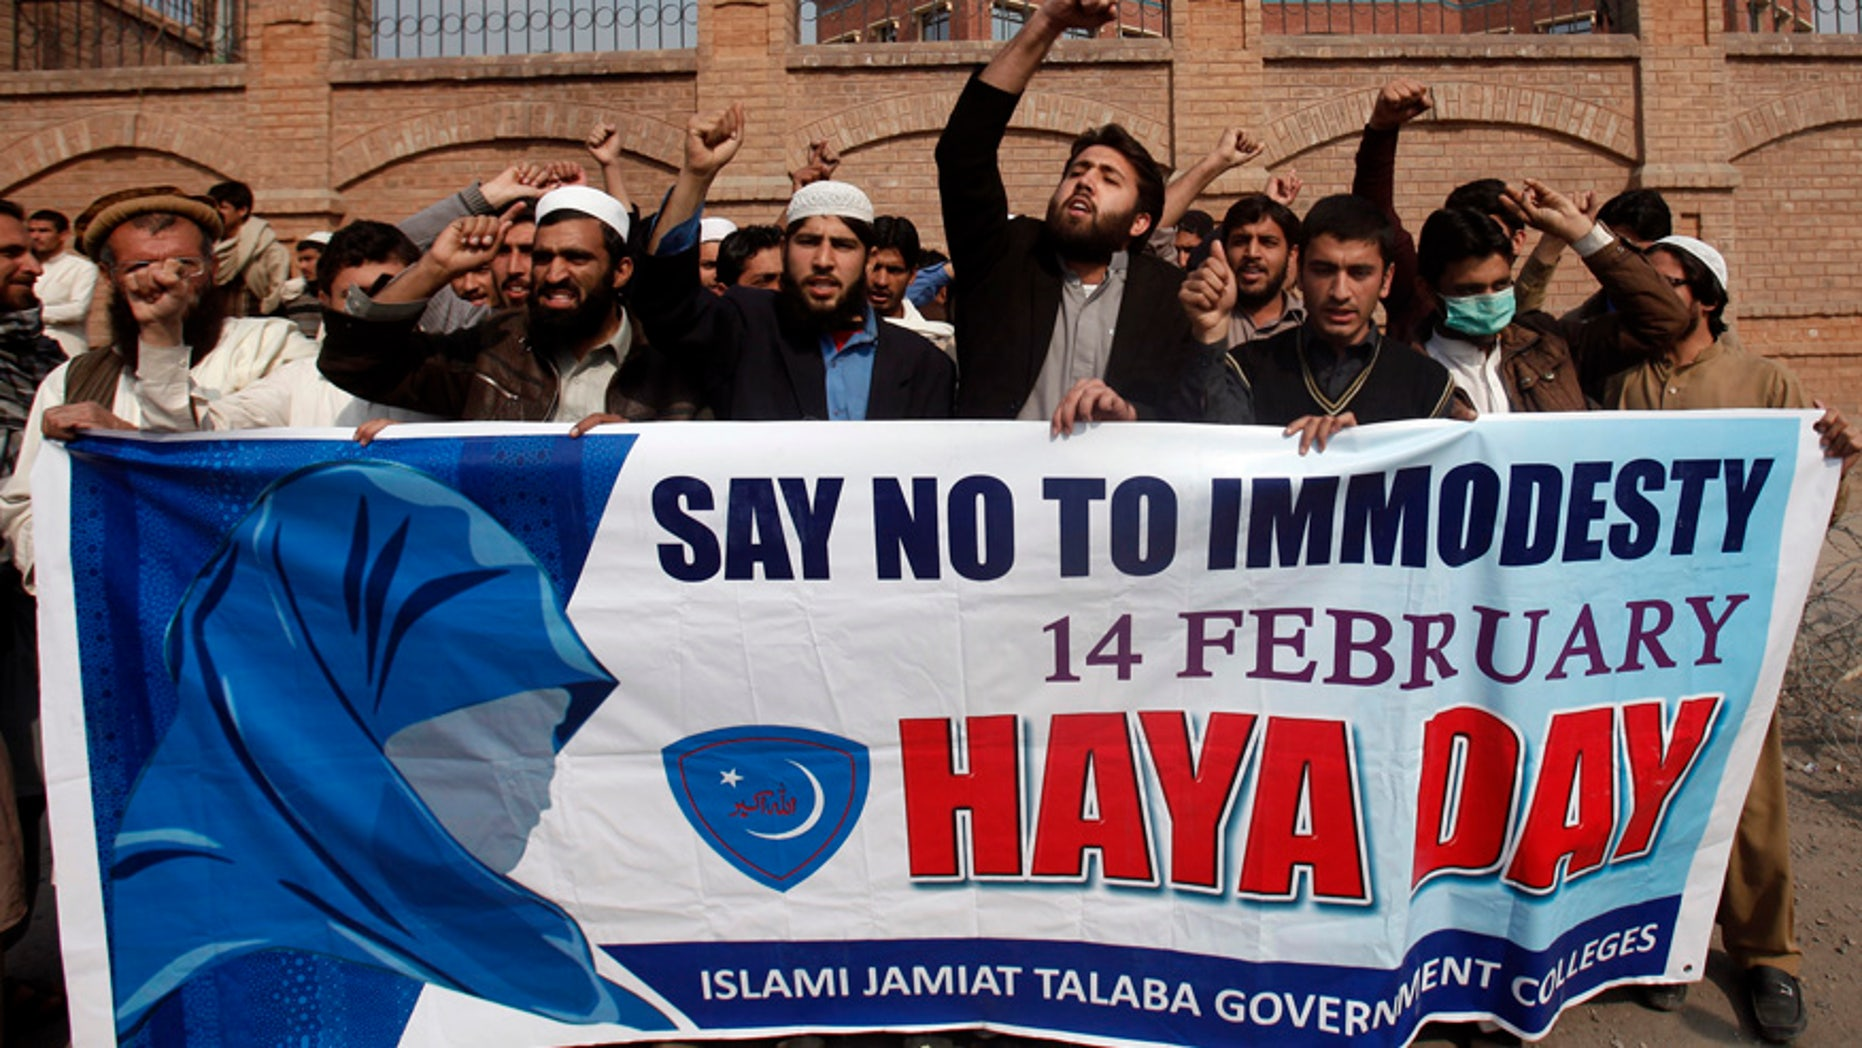 Feb. 14, 2014: Supporters of Islami Jamiat Talaba, a student wing of Pakistan's religious and political party Jamaat-e-Islami, shout slogans to condemn Valentine's Day during a protest at the University of Peshawar.